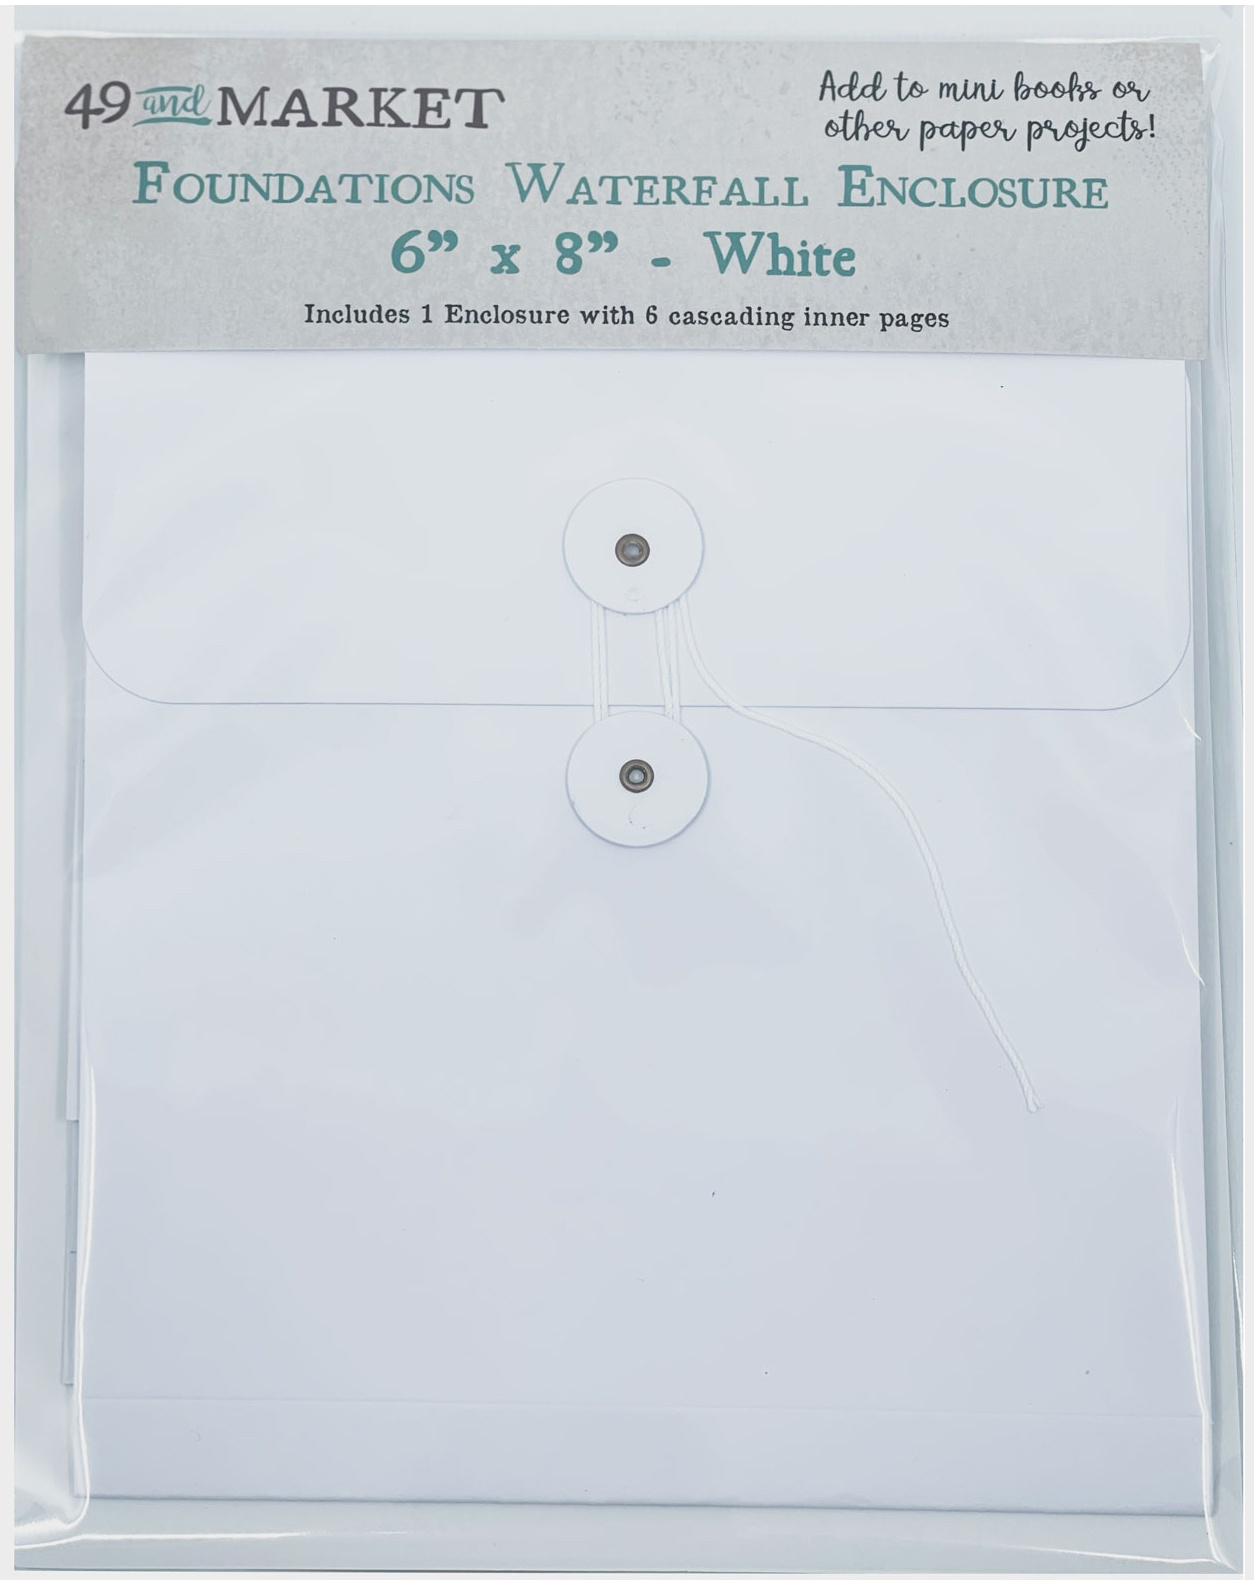 49 And Market Foundations Waterfall Enclosure 6X8-White